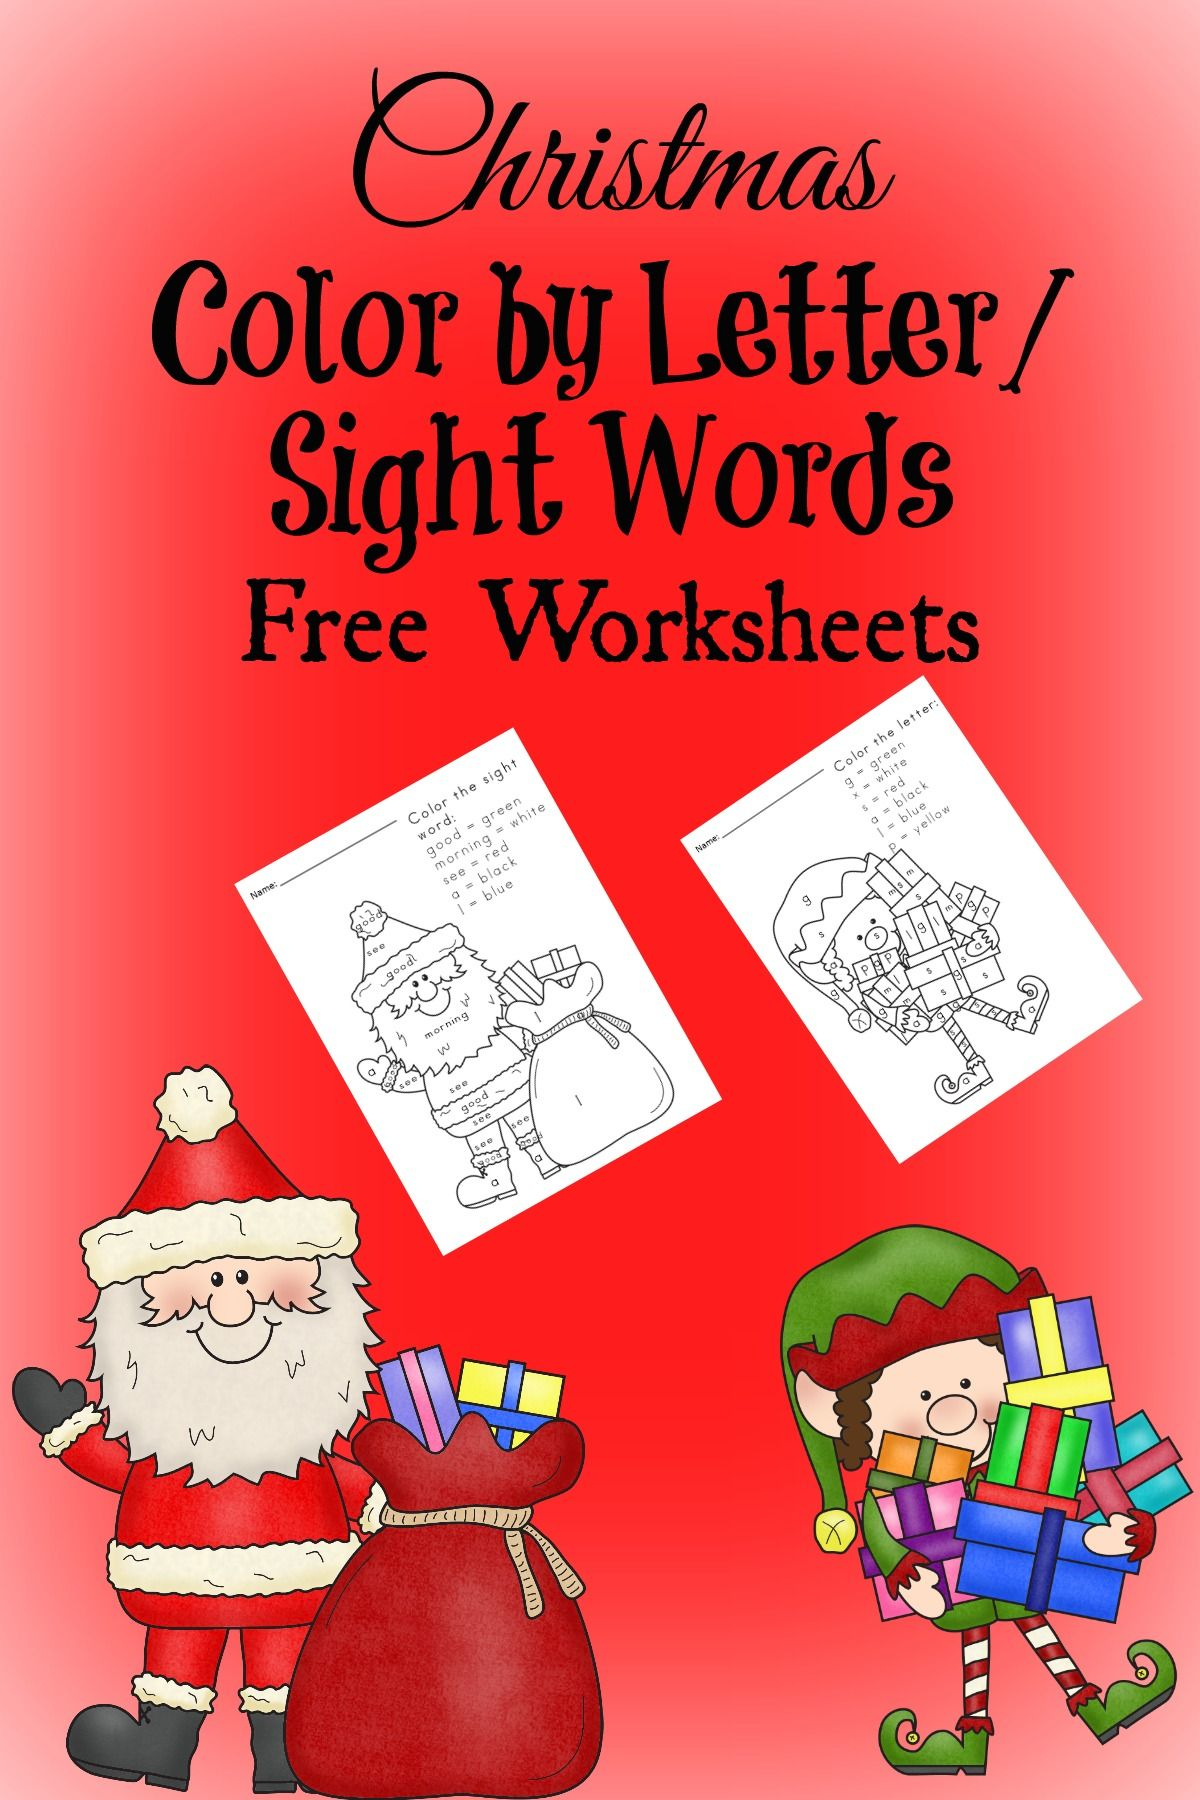 Free Christmas Worksheets For Kids Color By Lettersight Word